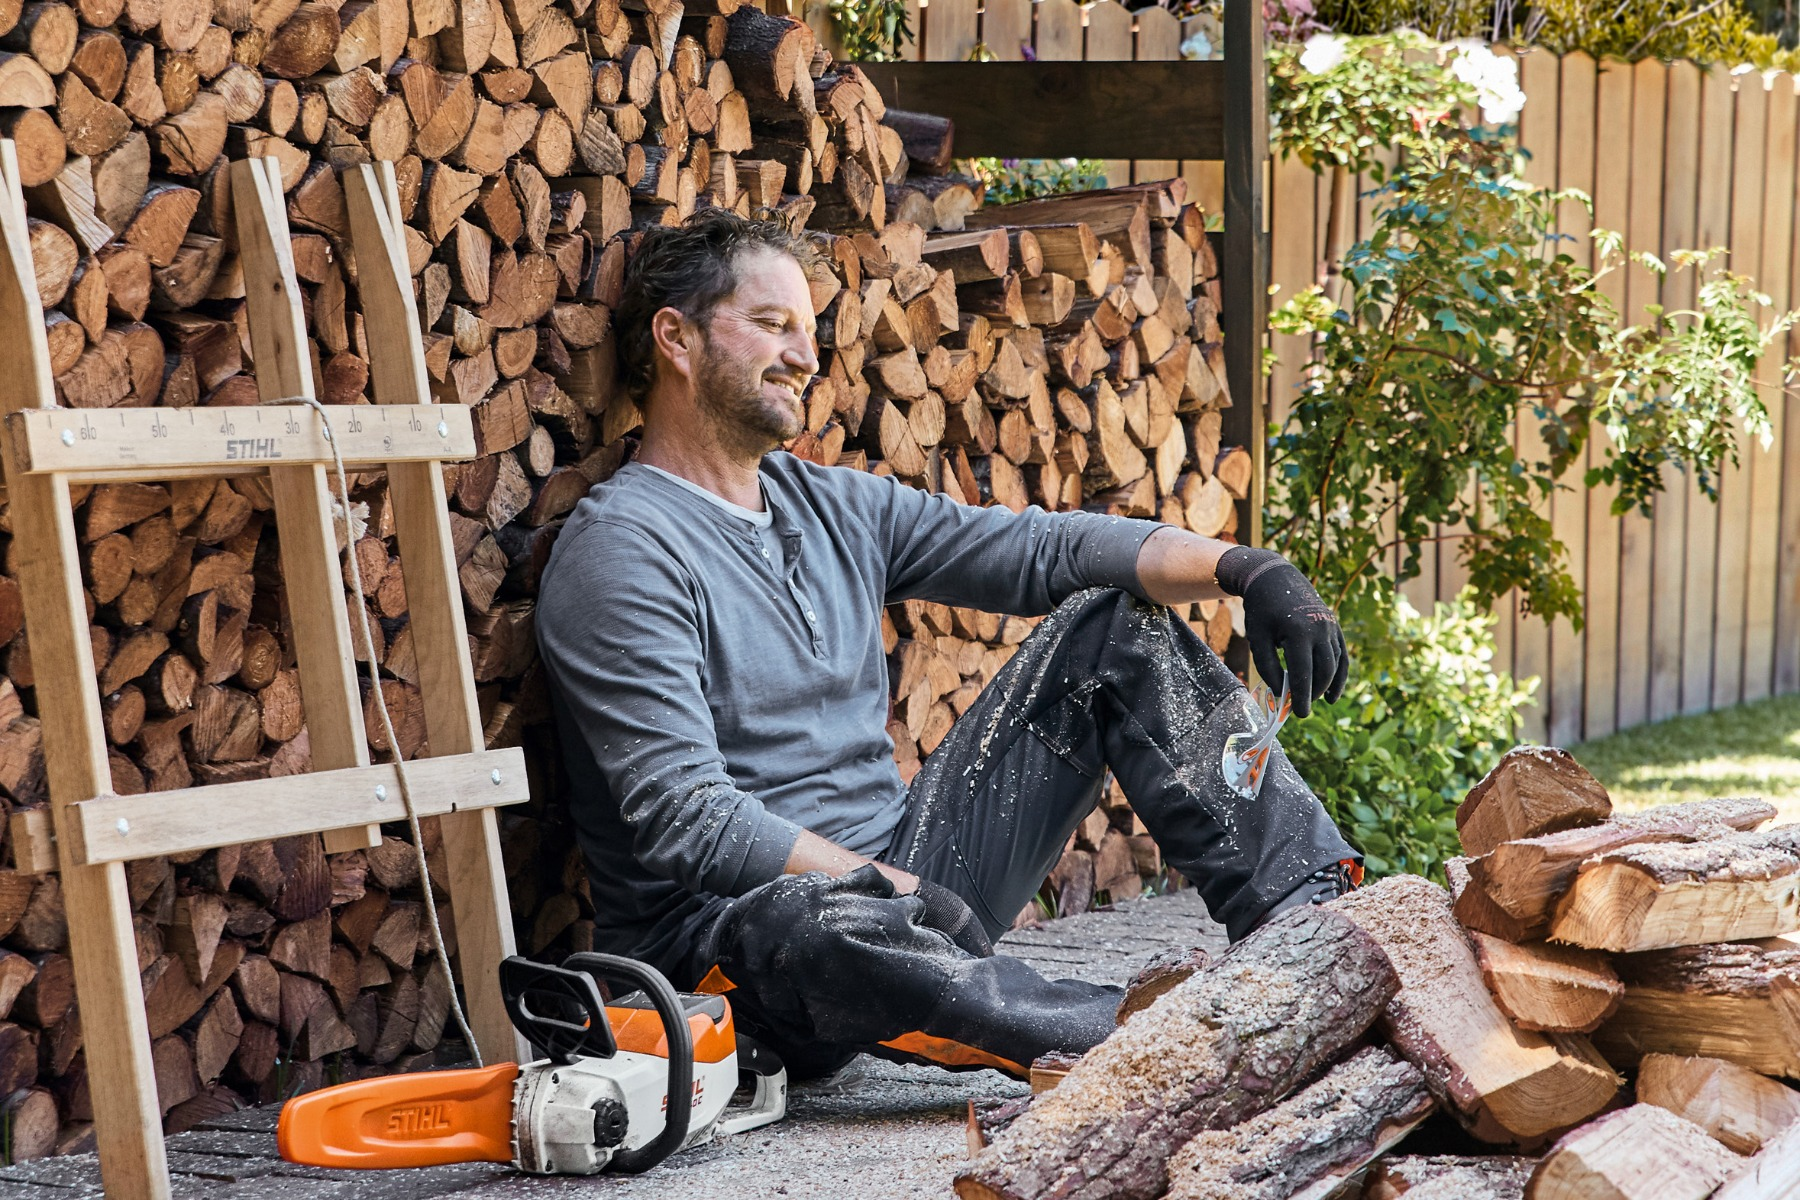 A man looking satisfied after cutting firewood with his STIHL Chainsaw